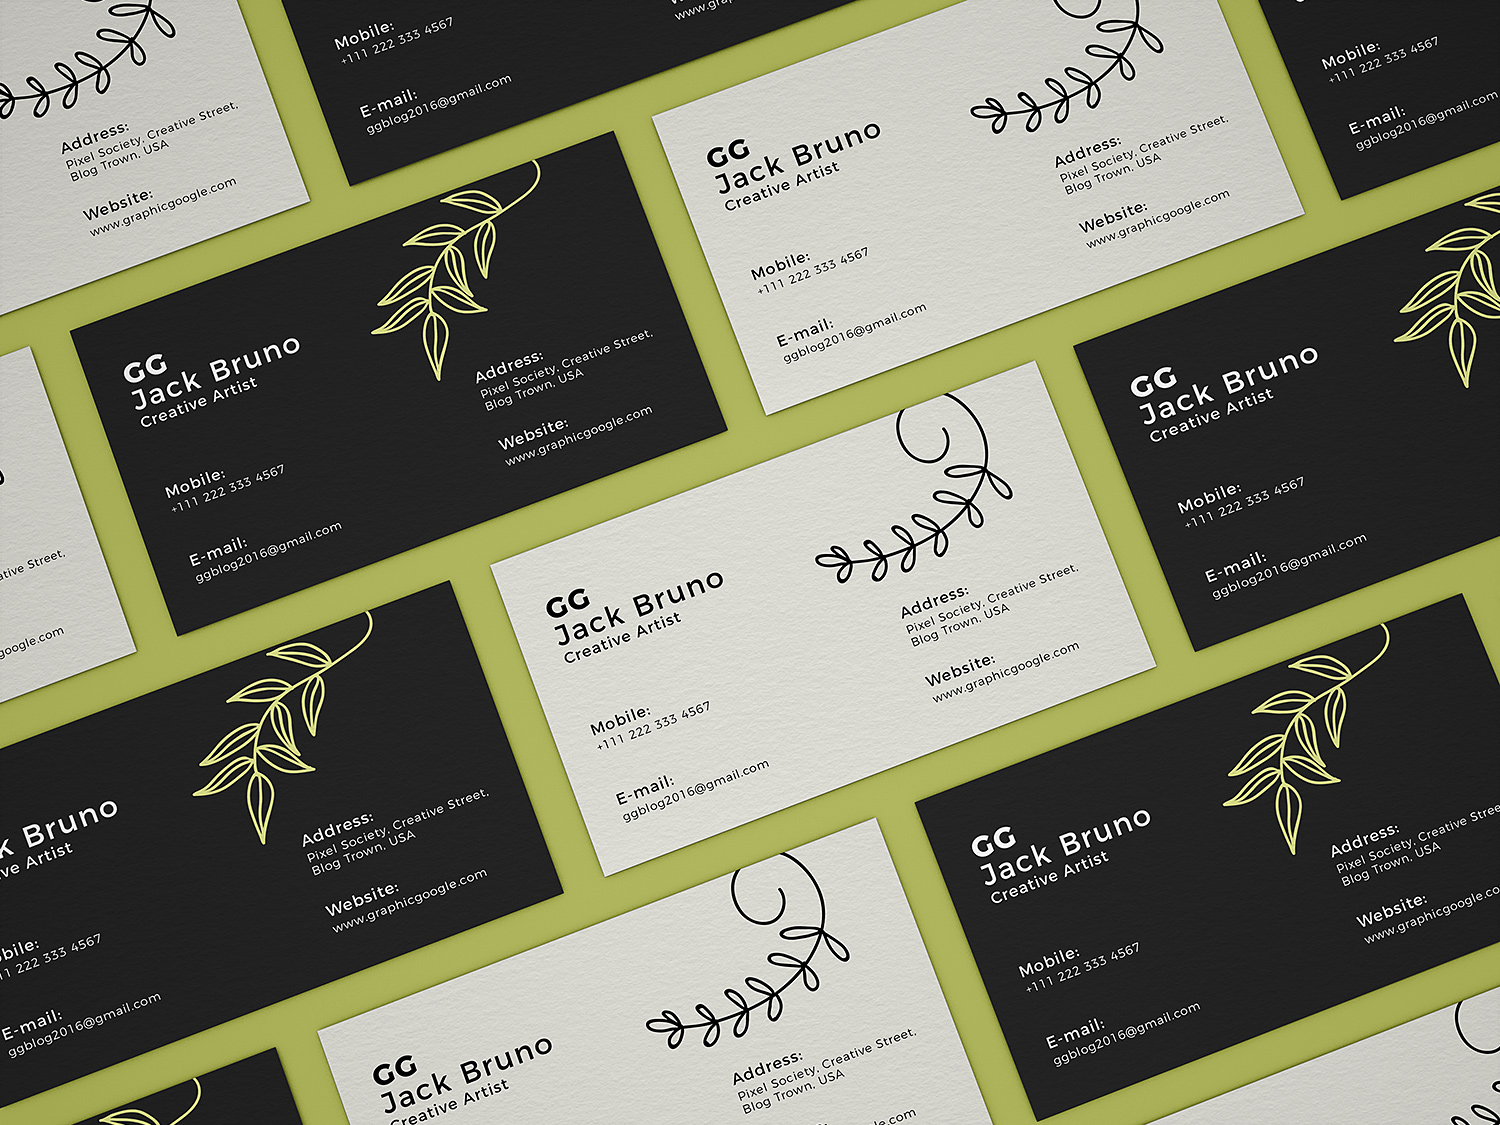 Stationery Business Cards Mockup